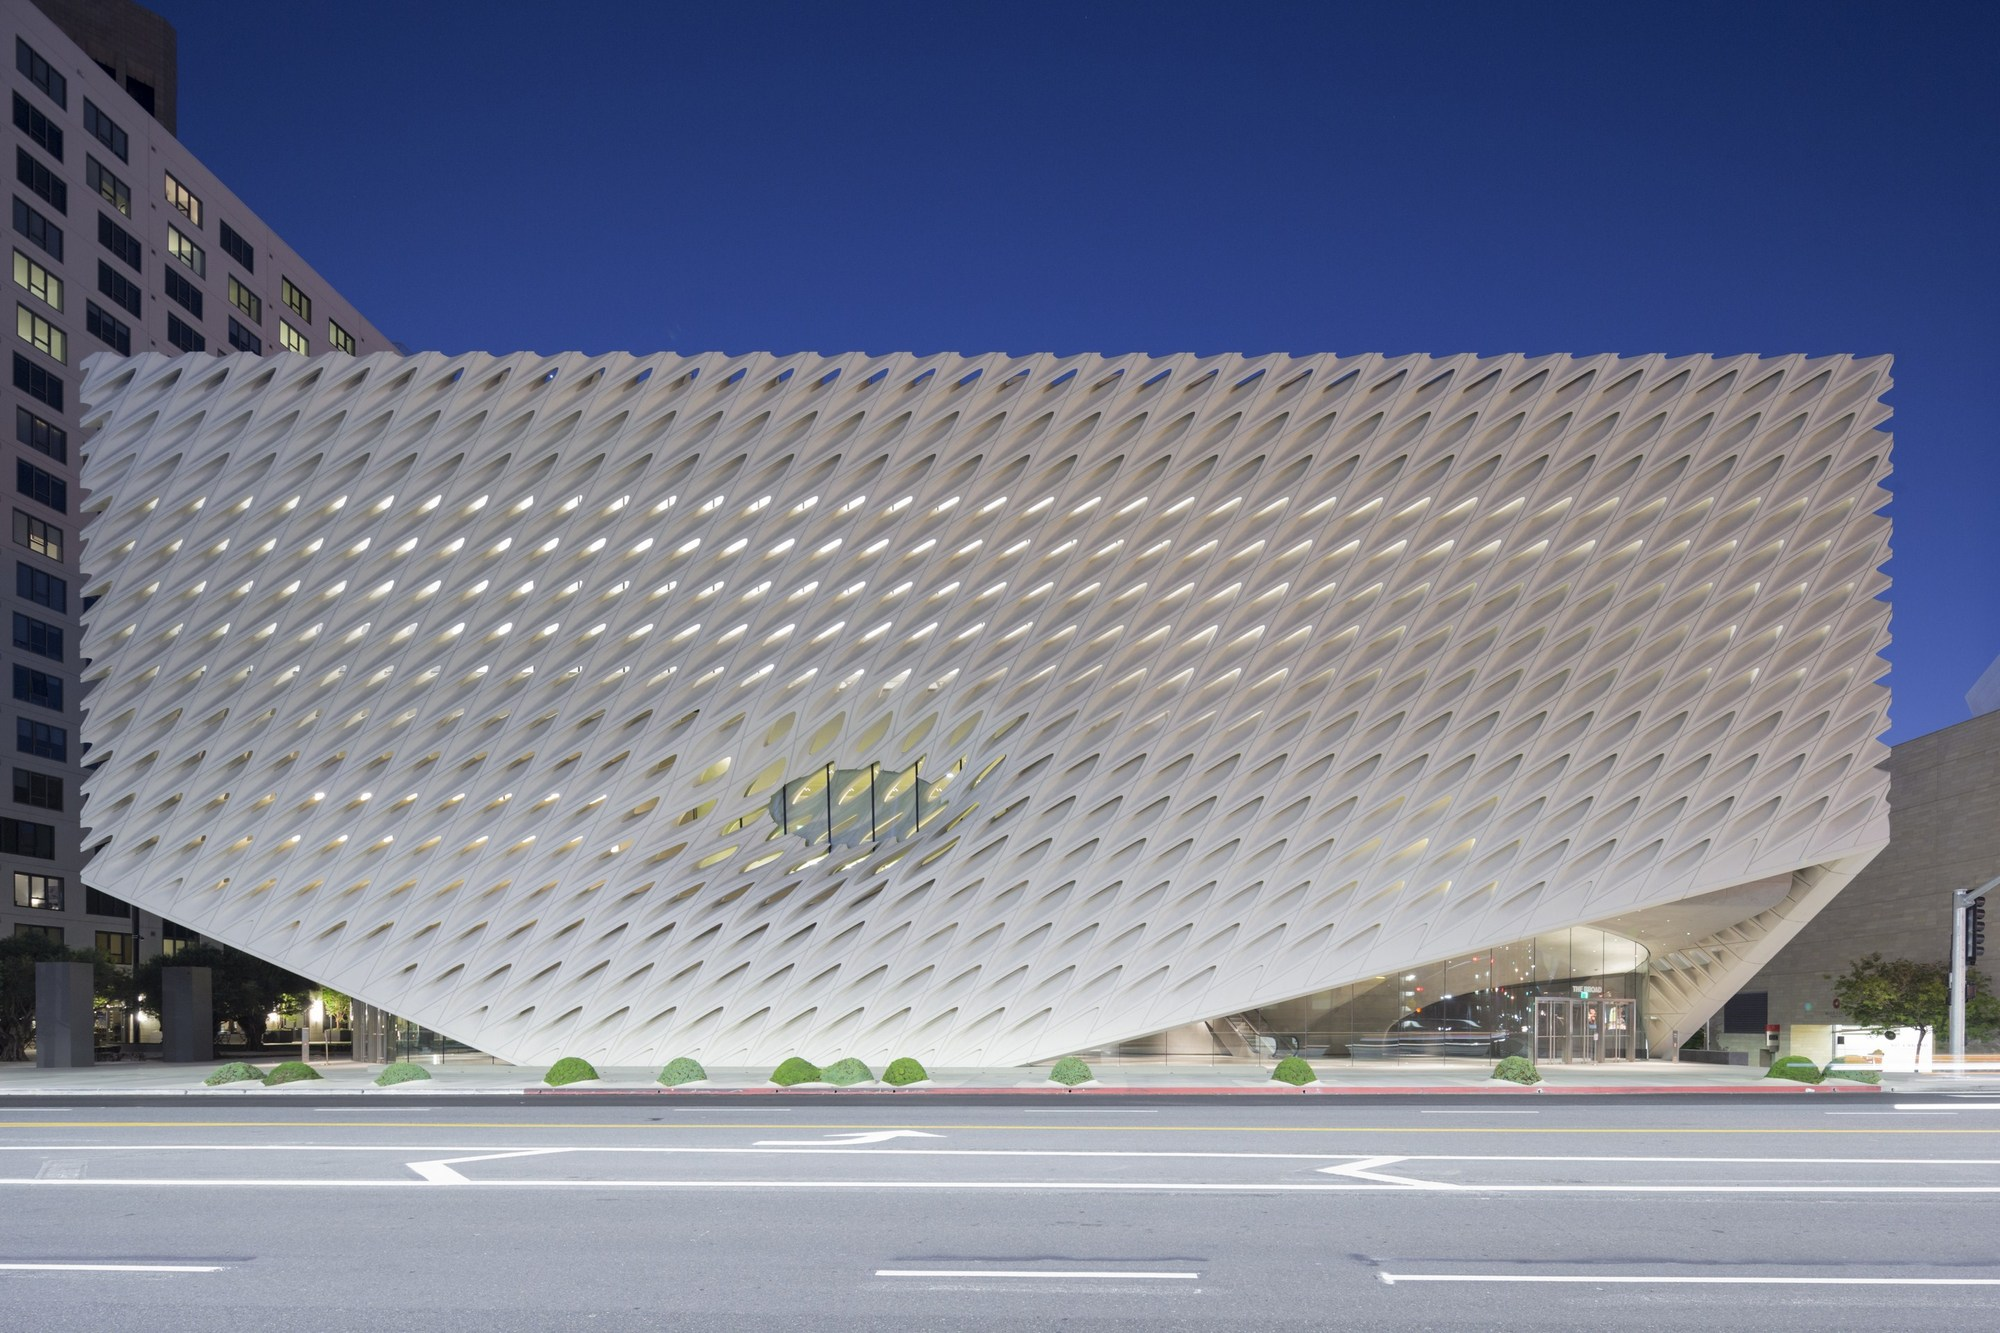 The Broad Museum / Diller Scofidio + Renfro | ArchDaily